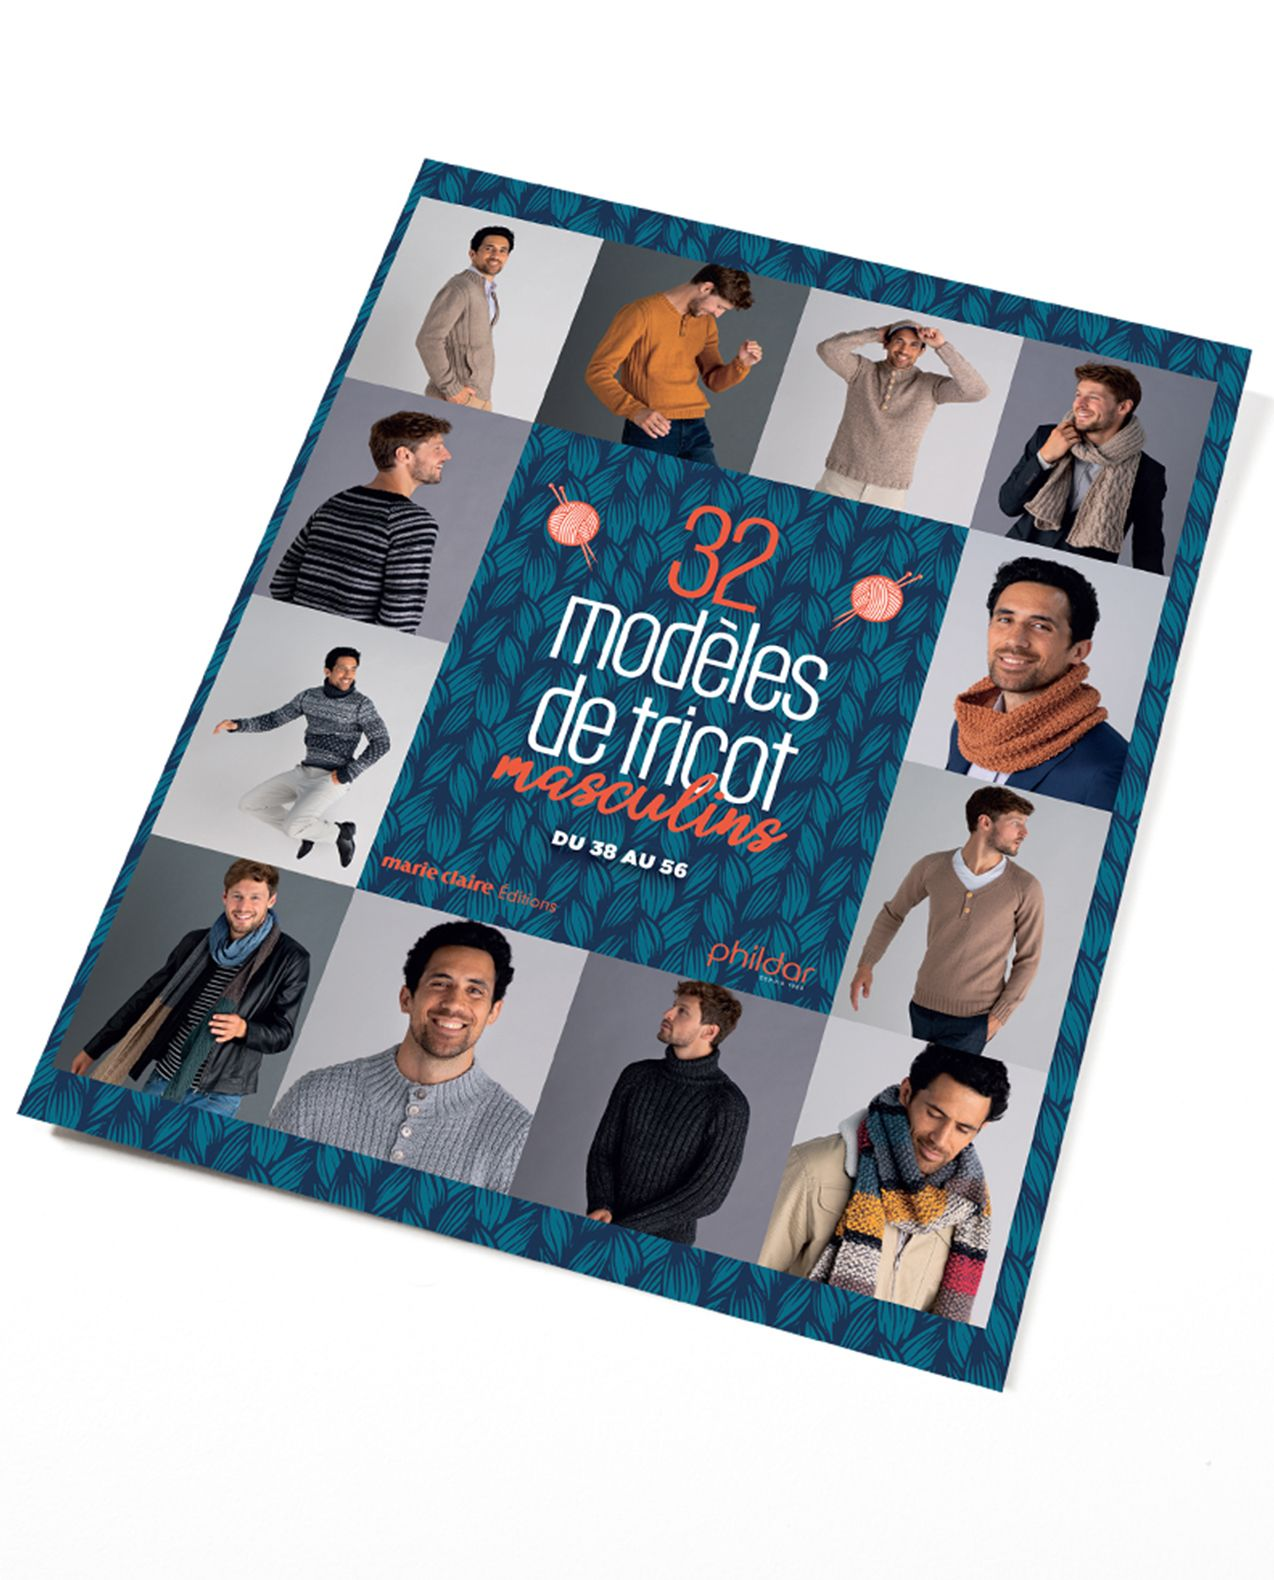 Catalogue n°868 : 32 Tricots masculins !